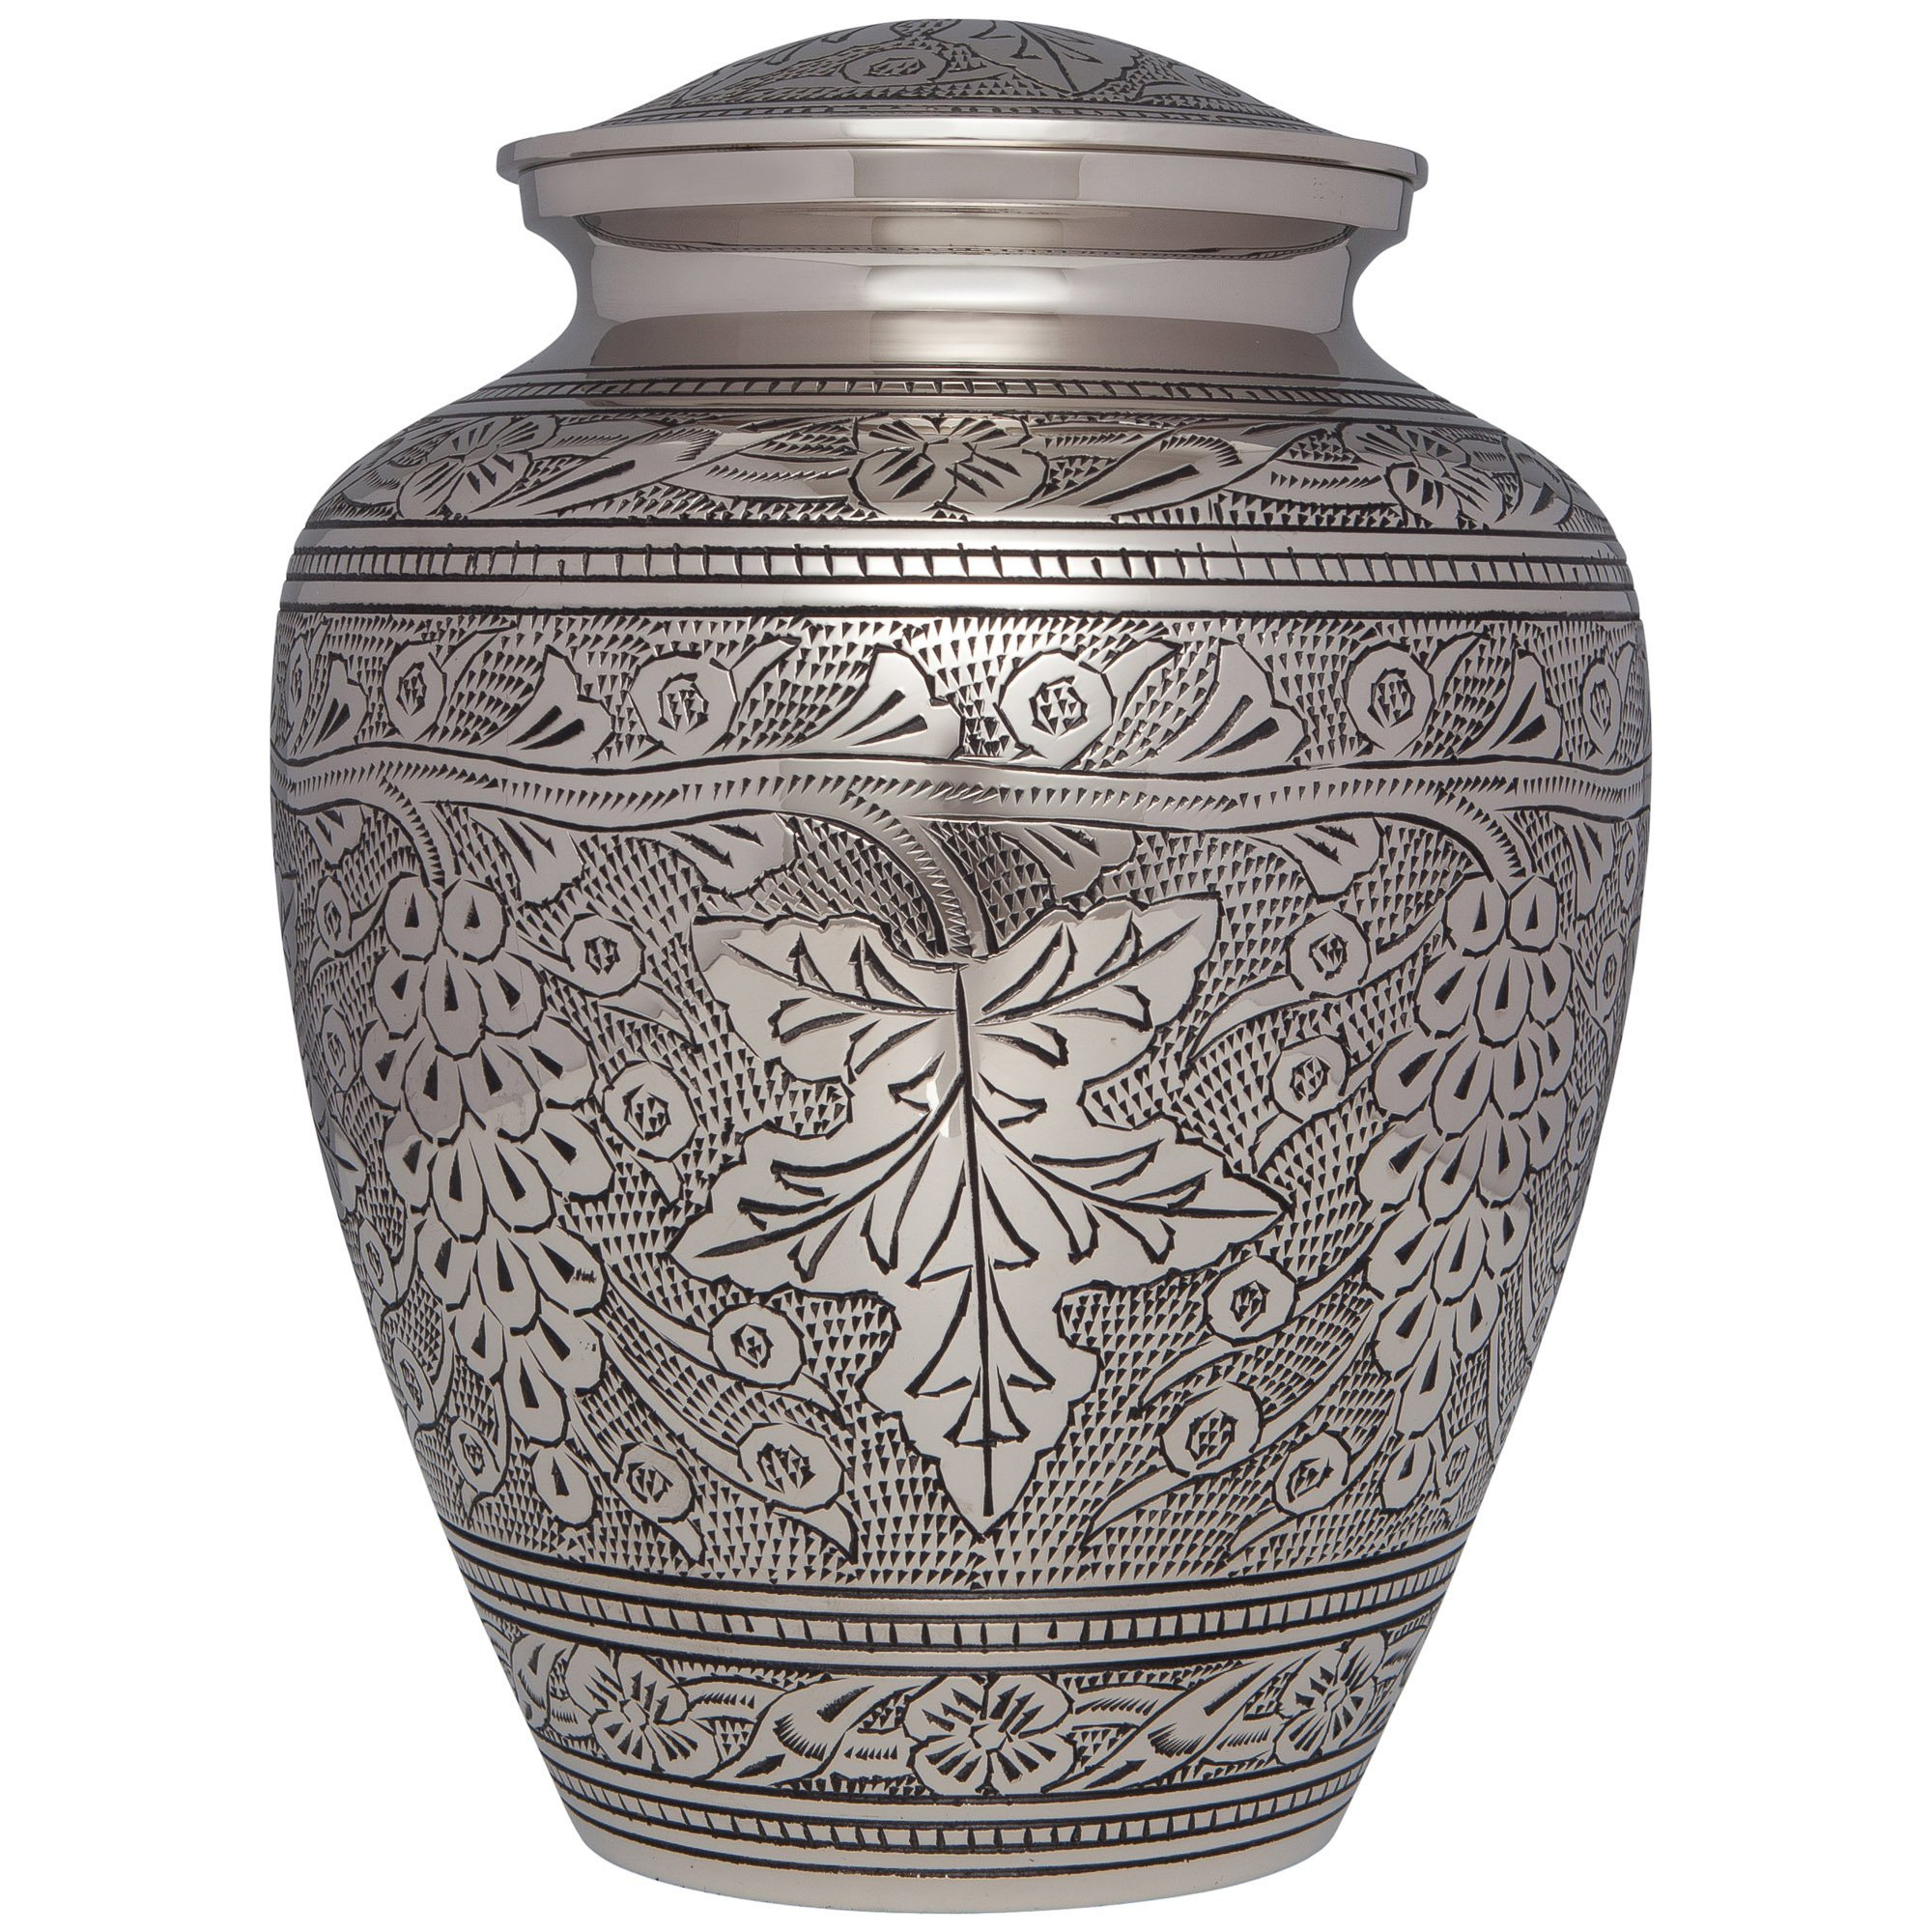 Silver Funeral Urn by Liliane Memorials- Cremation Urn for Human Ashes -Hand Made in Brass -Suitable for Cemetery Burial or Niche- Large Size fits remains of Adults up to 200 lbs- Bordeaux Model